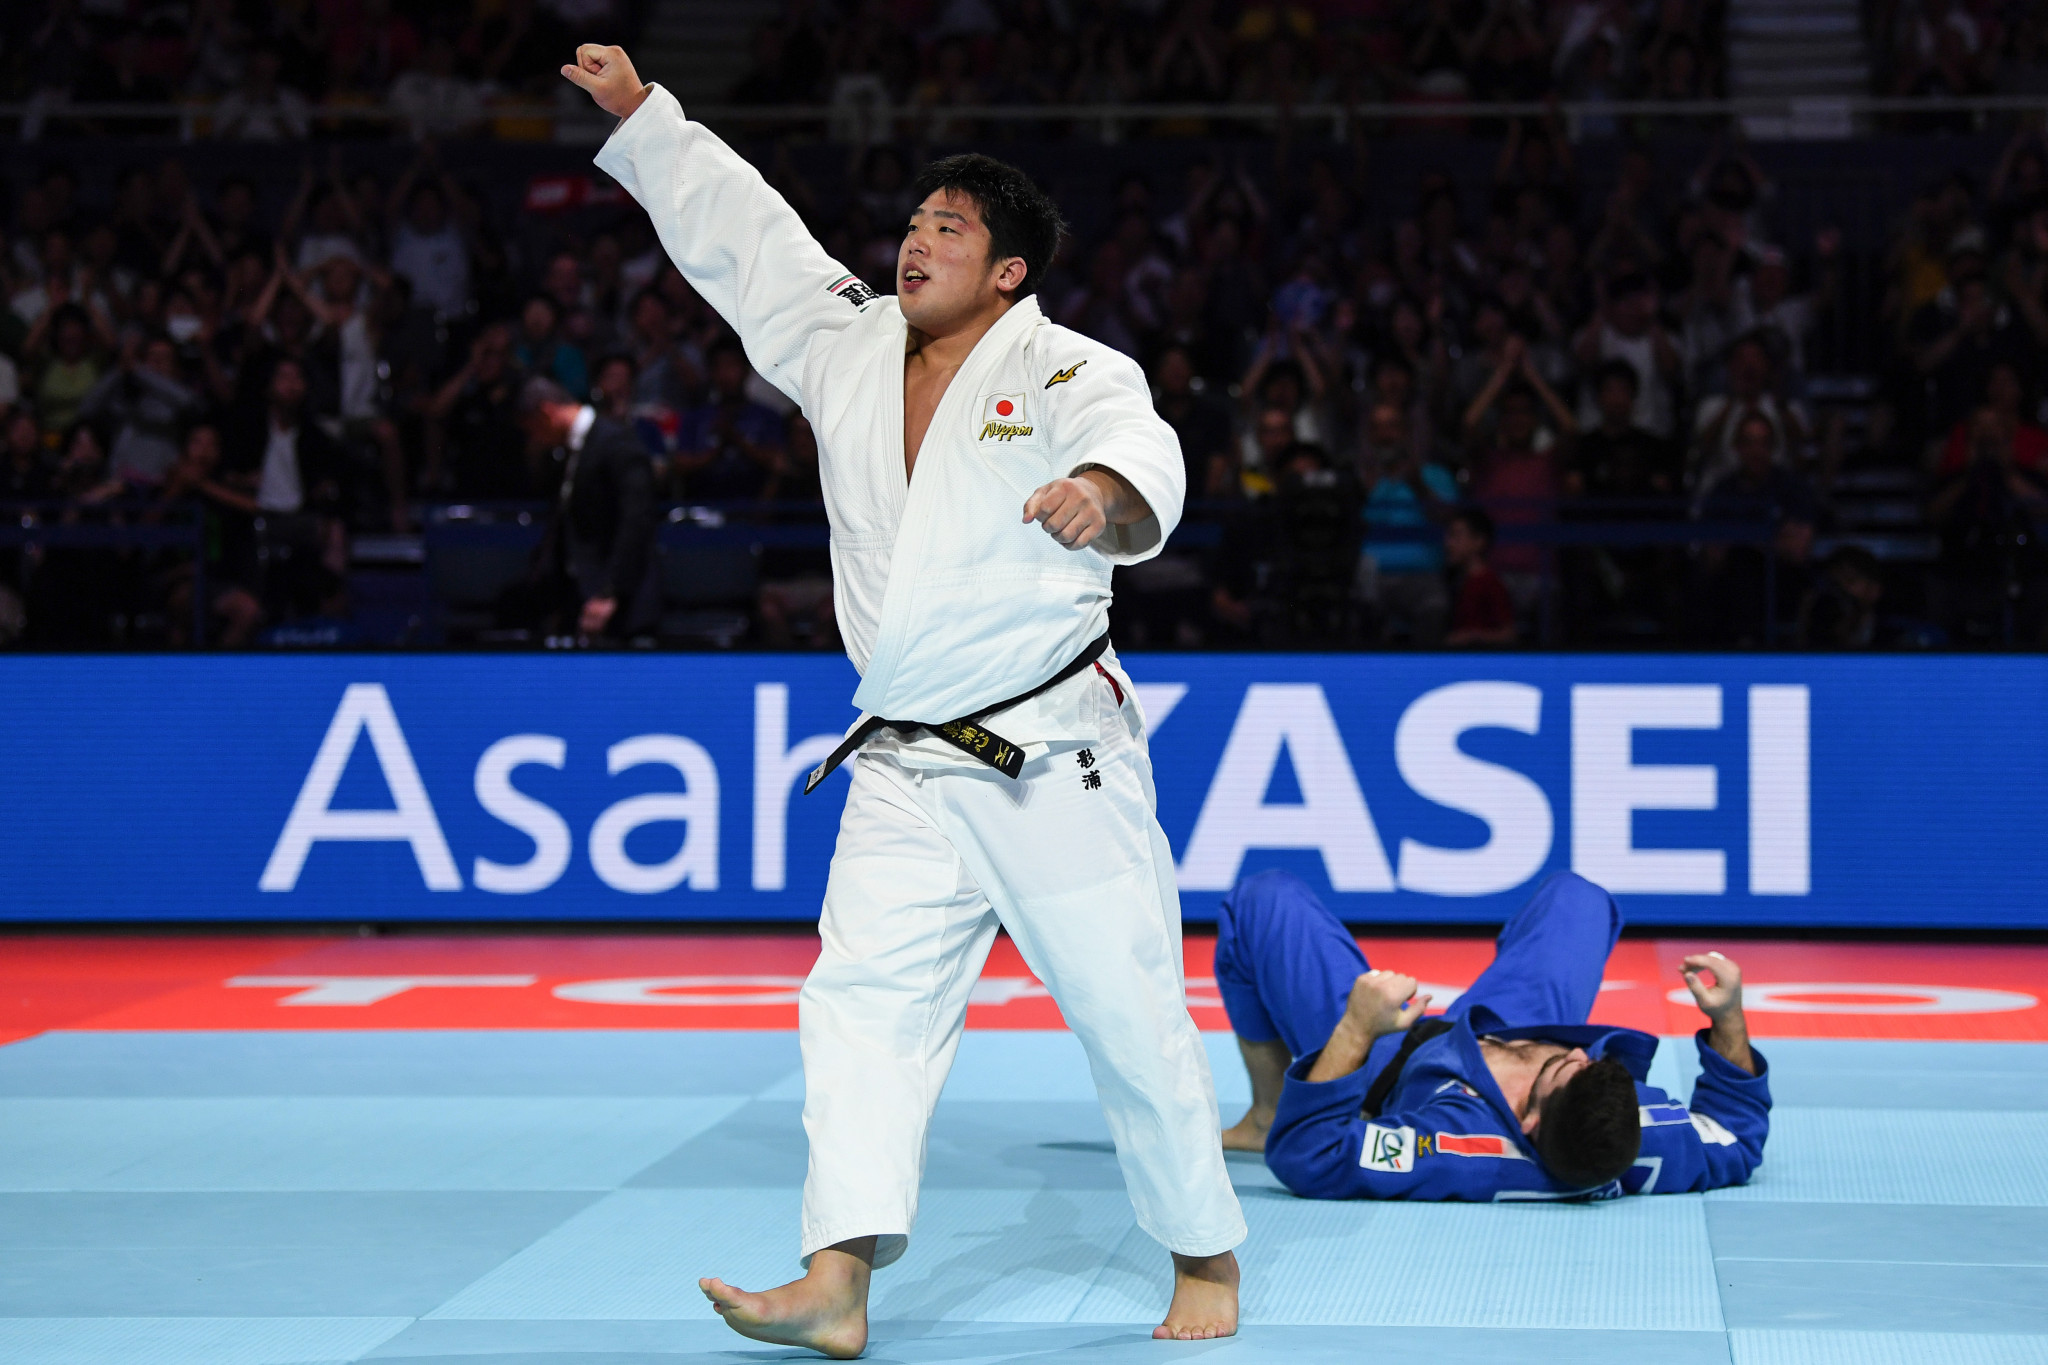 Kyrgyzstan to host Asian-Oceania Judo Championships in 2021